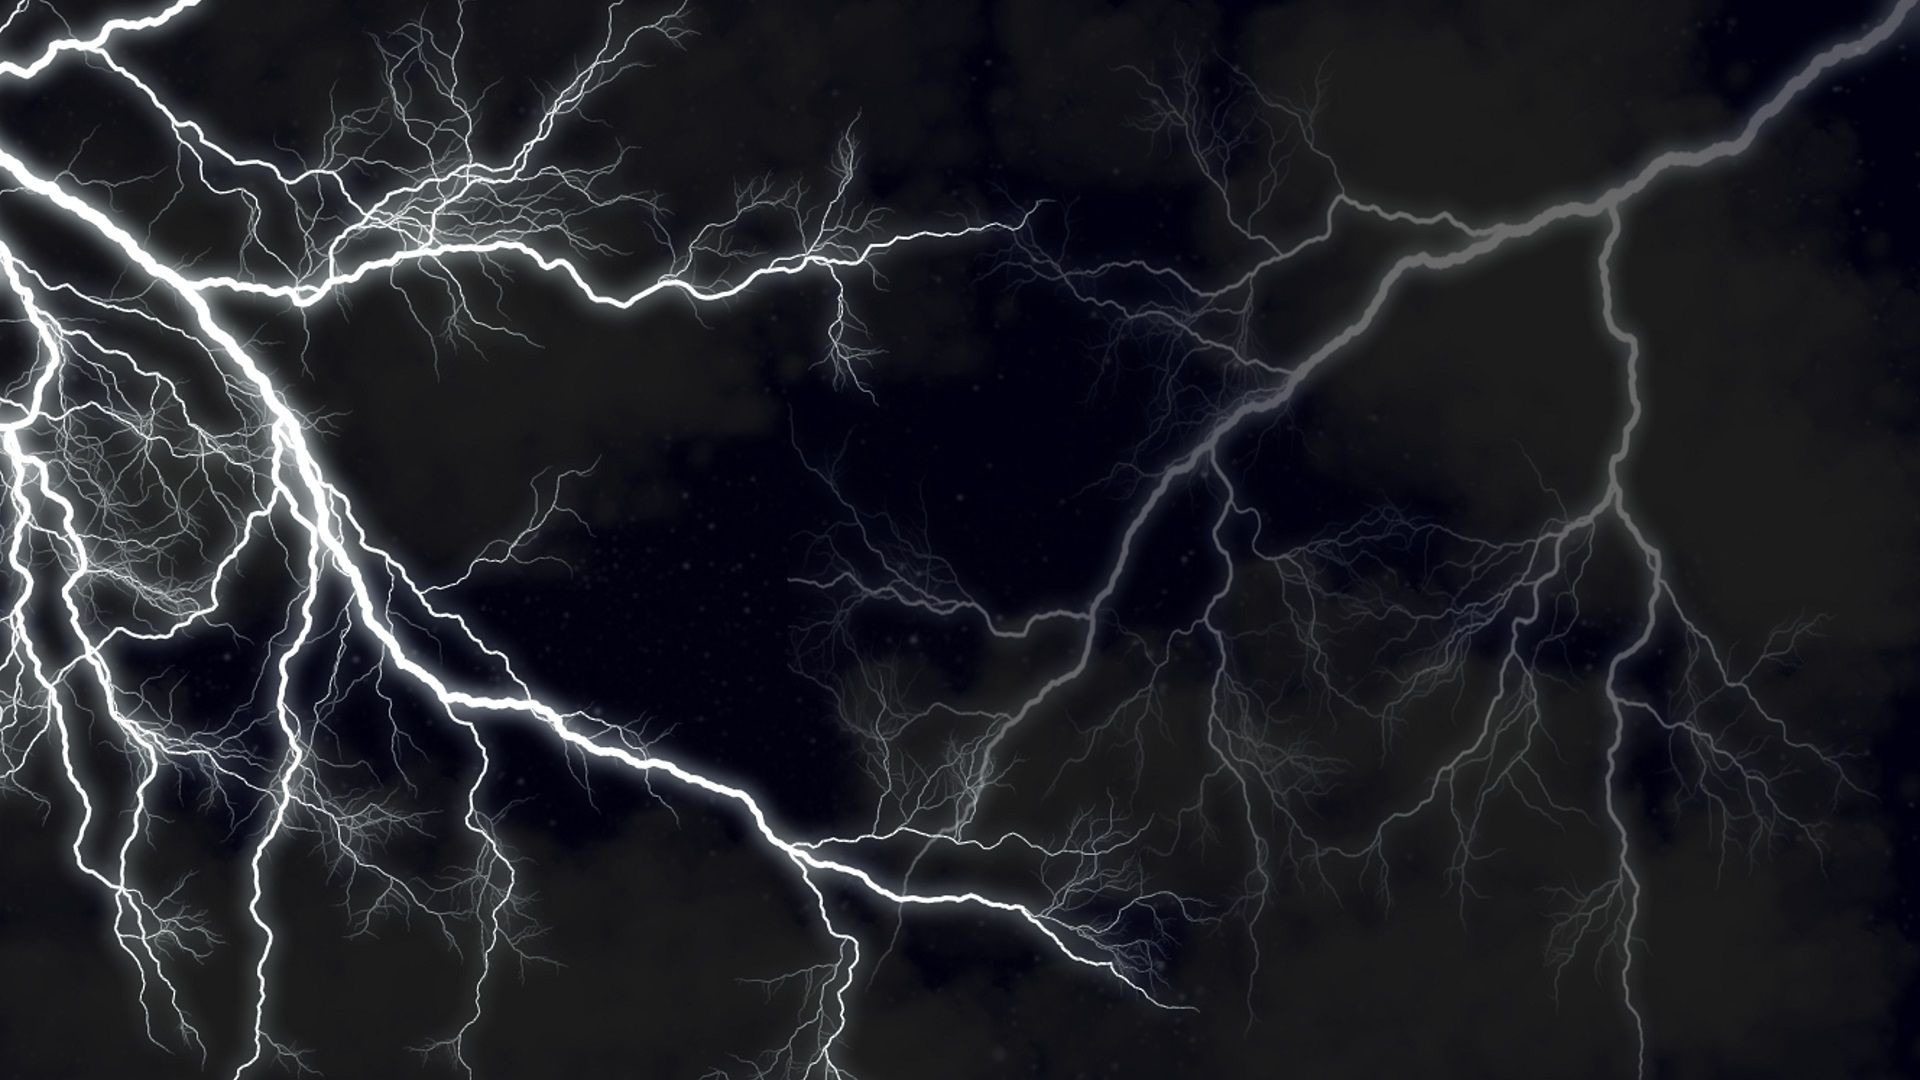 1920x1080 Lightning Bolts images Lightning Strikes wallpaper and background